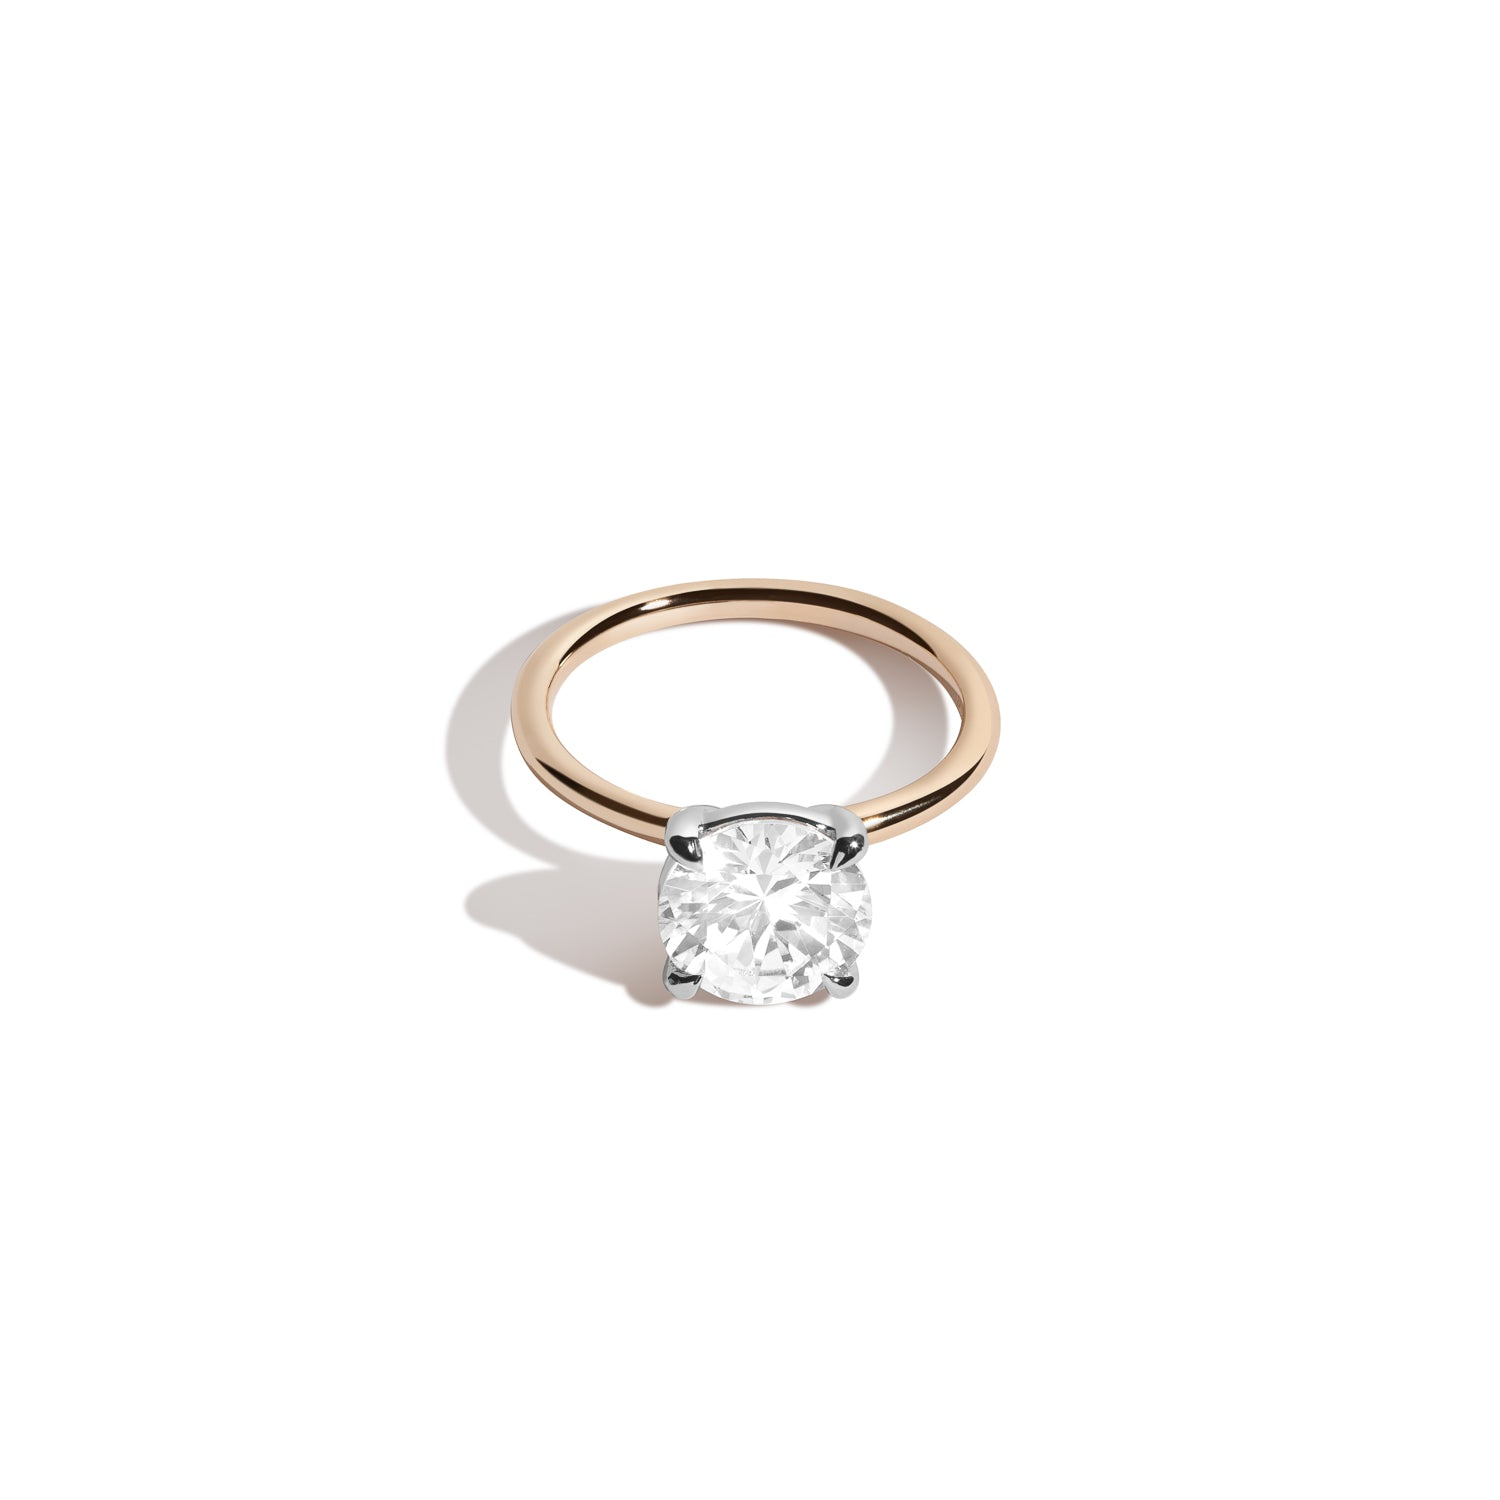 Shahla Karimi Brilliant Barely There Ring